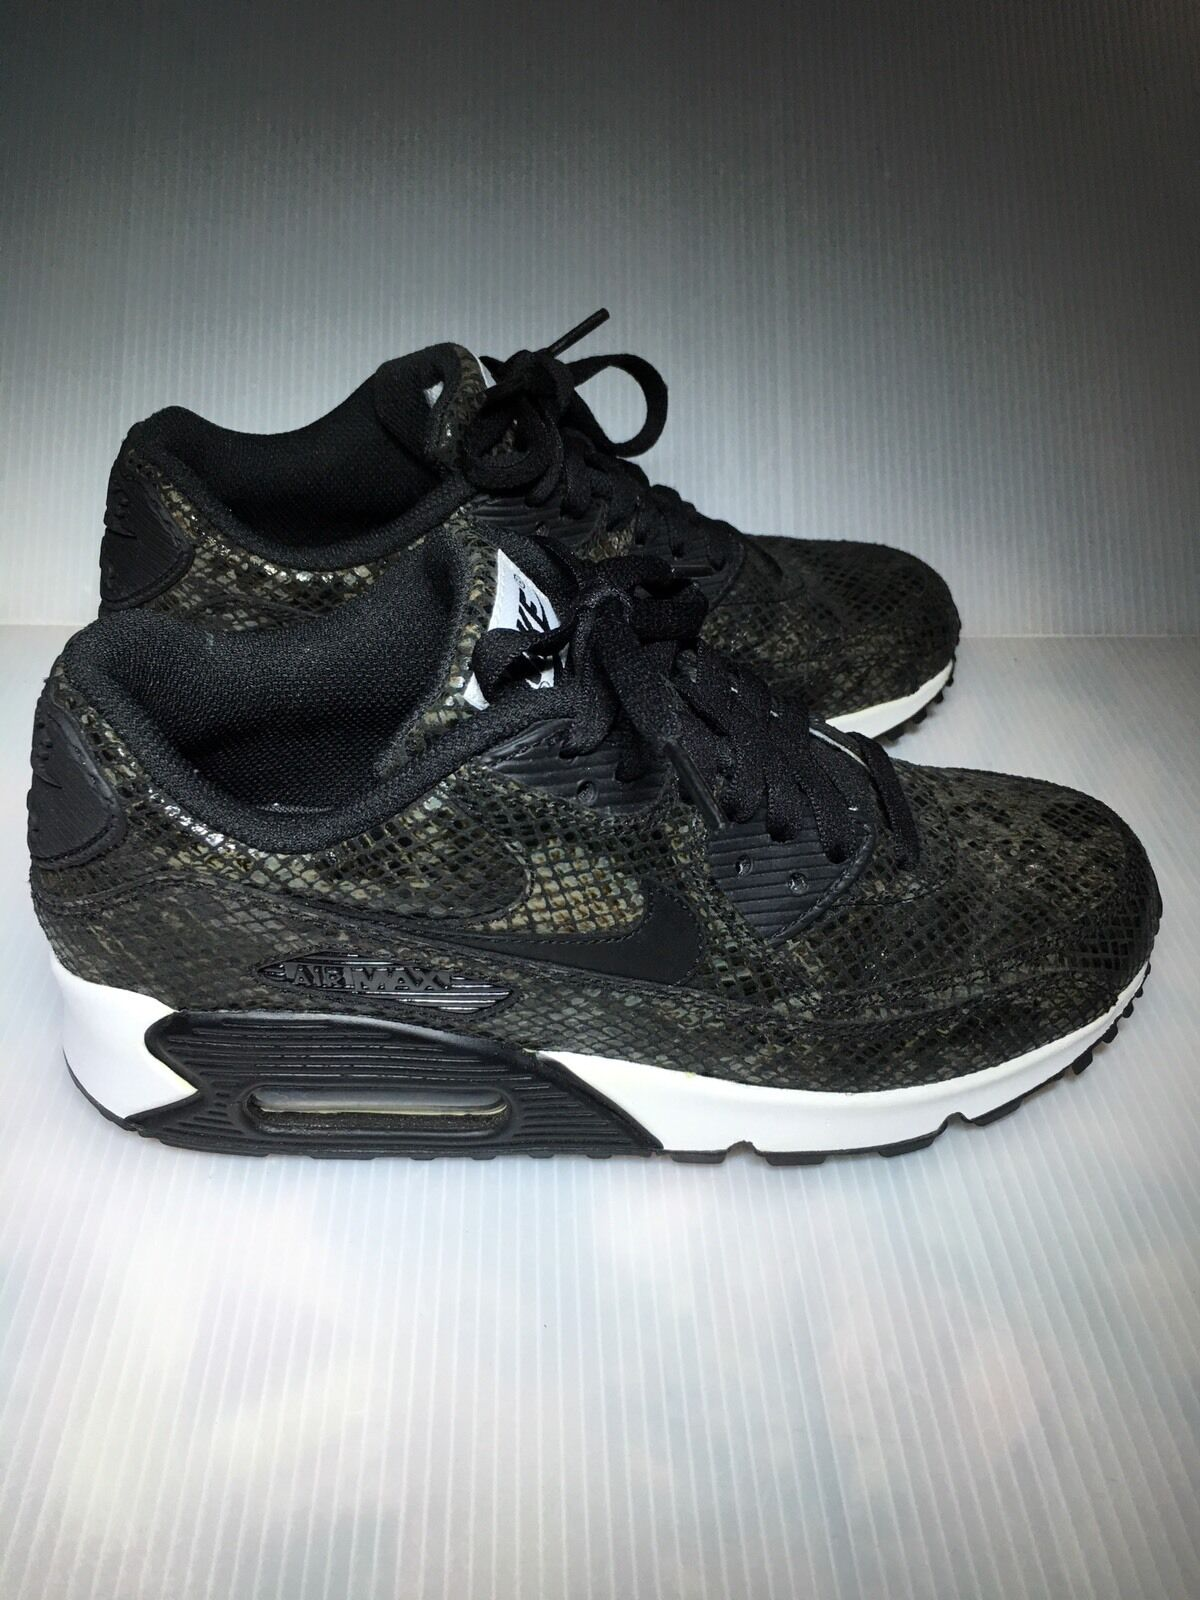 Nike airmax ID snake skin US7.5 (RARE)-limited (RARE)-limited (RARE)-limited edition-EXCELLENT CONDITION aabf10